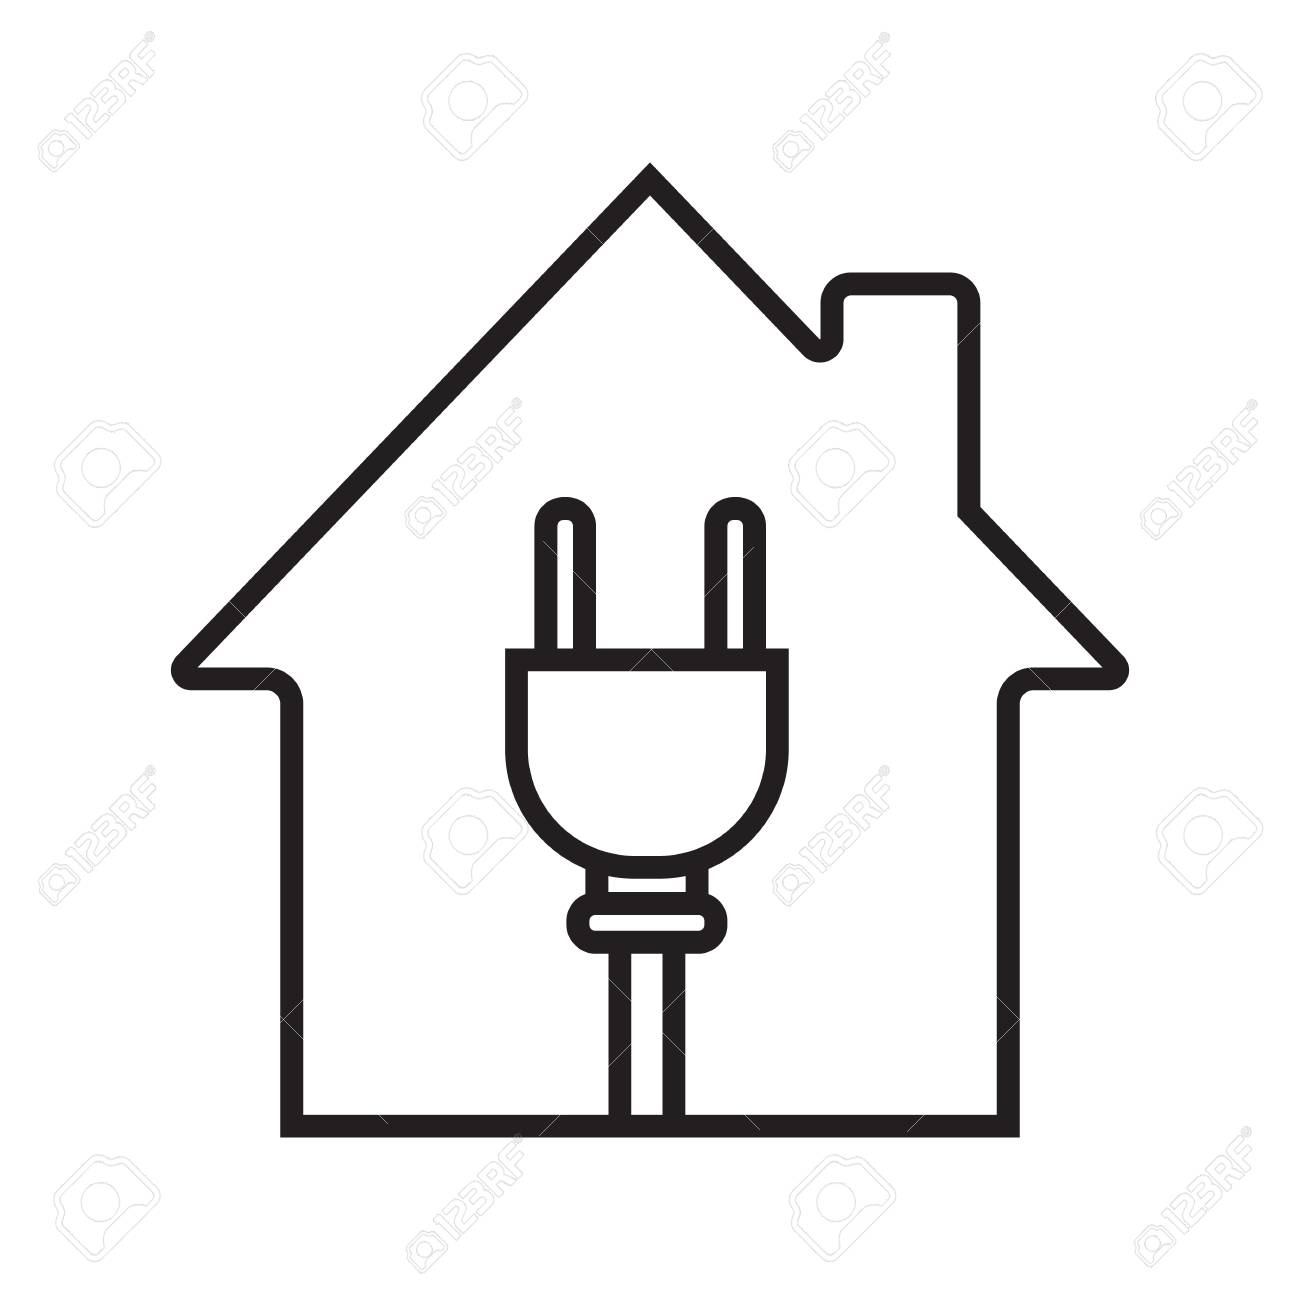 hight resolution of house with wire plug linear icon stock vector 88721264